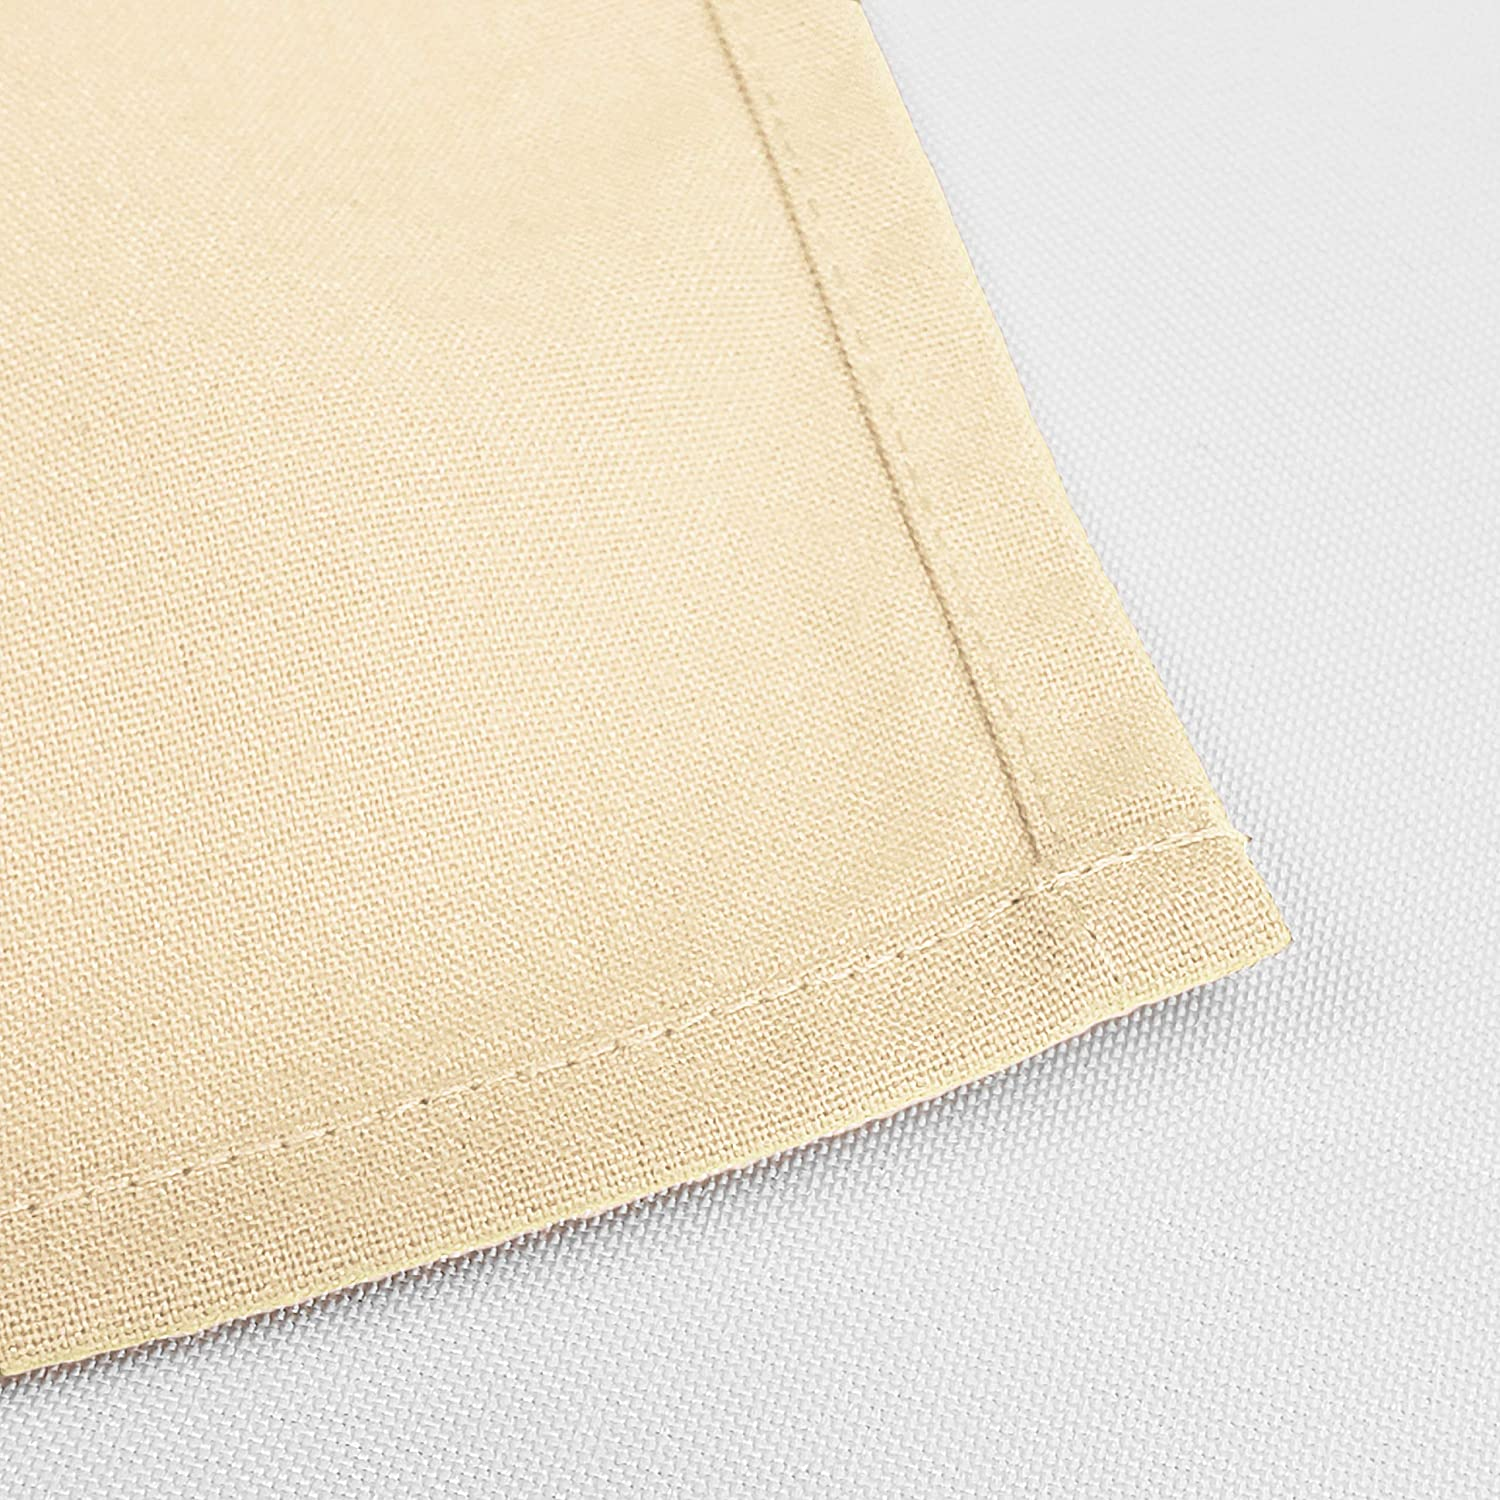 Amazon Com Tablelinensforless Hemmed Edge Restaurant Size 20 Inch Square Spun Polyester Dinner Napkins Set Of 12 Beige Home Kitchen